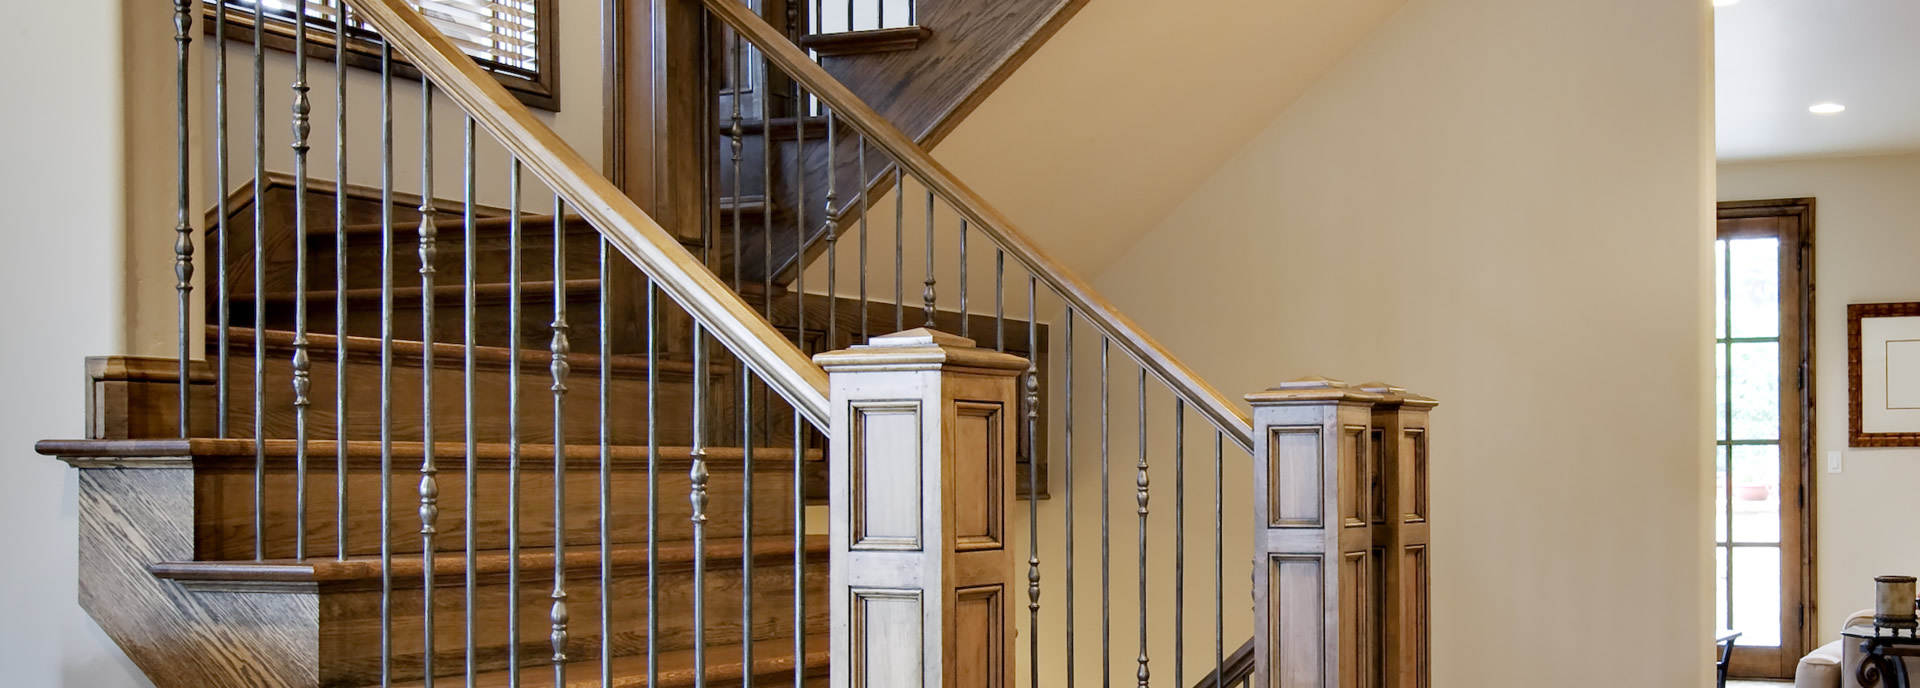 Wrought Iron Stair Railings: Always On Trend Alpharetta, GA